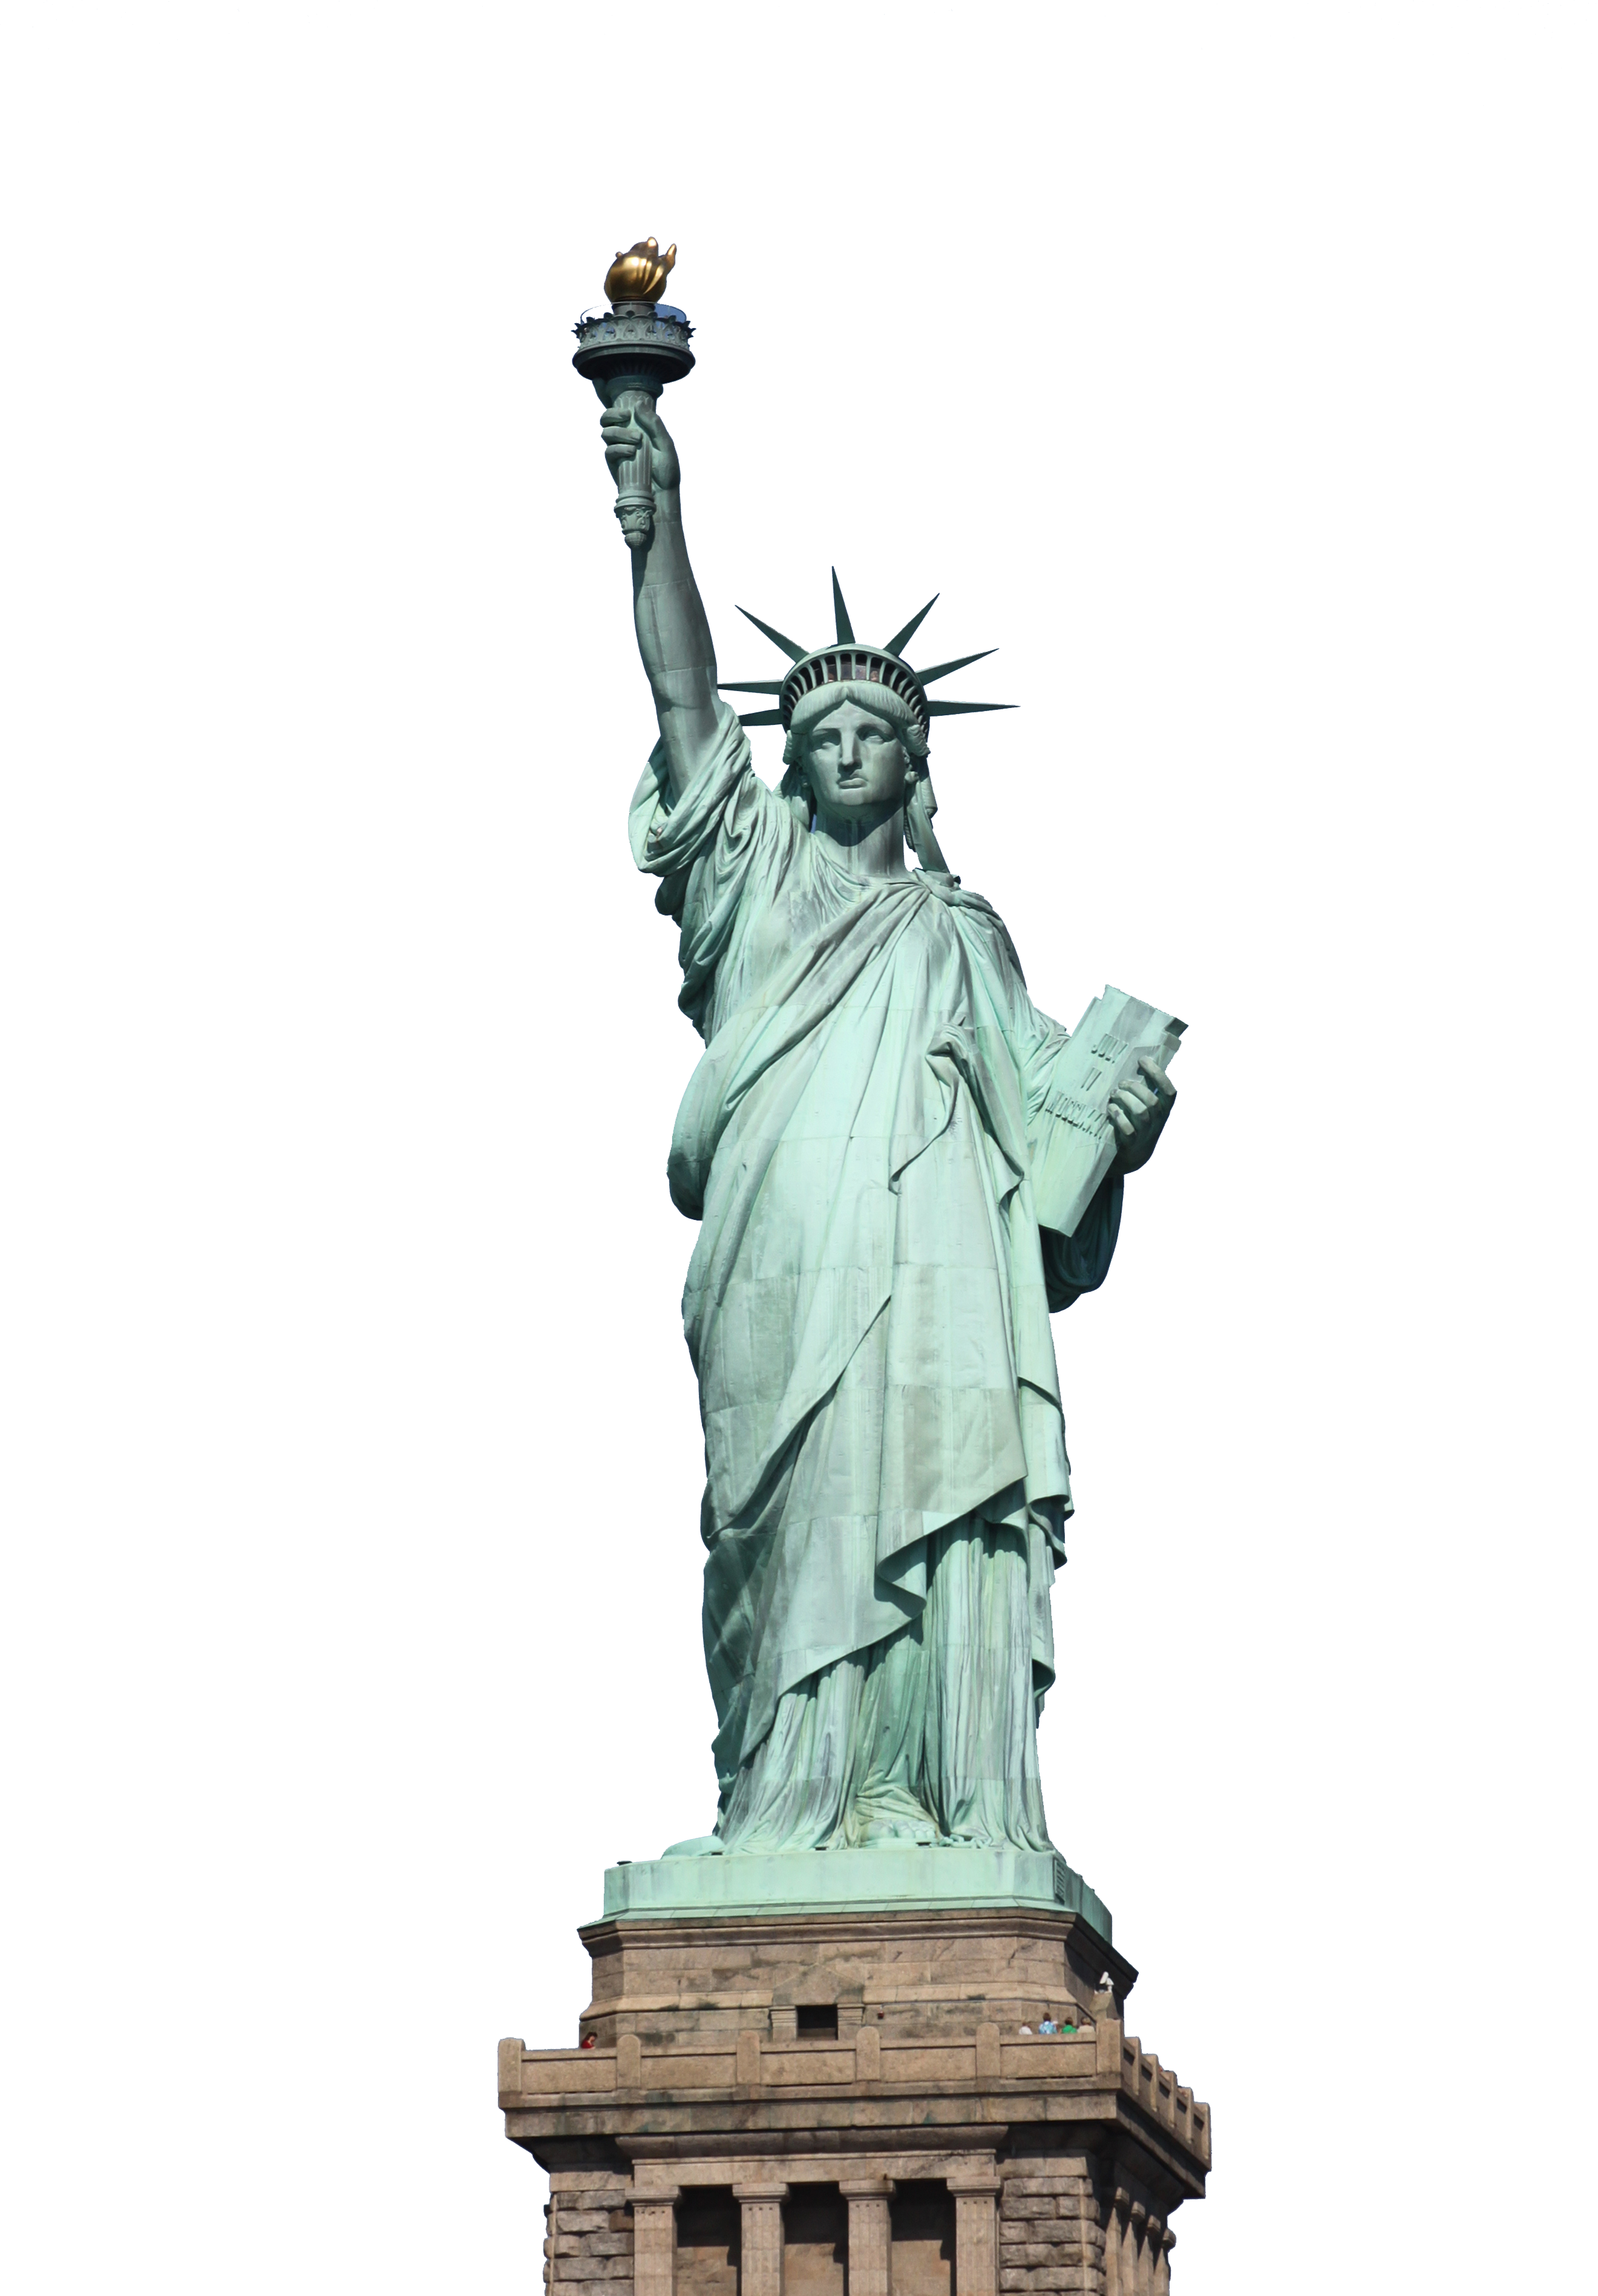 Statue of liberty apple png. Freedom monument usa transprent